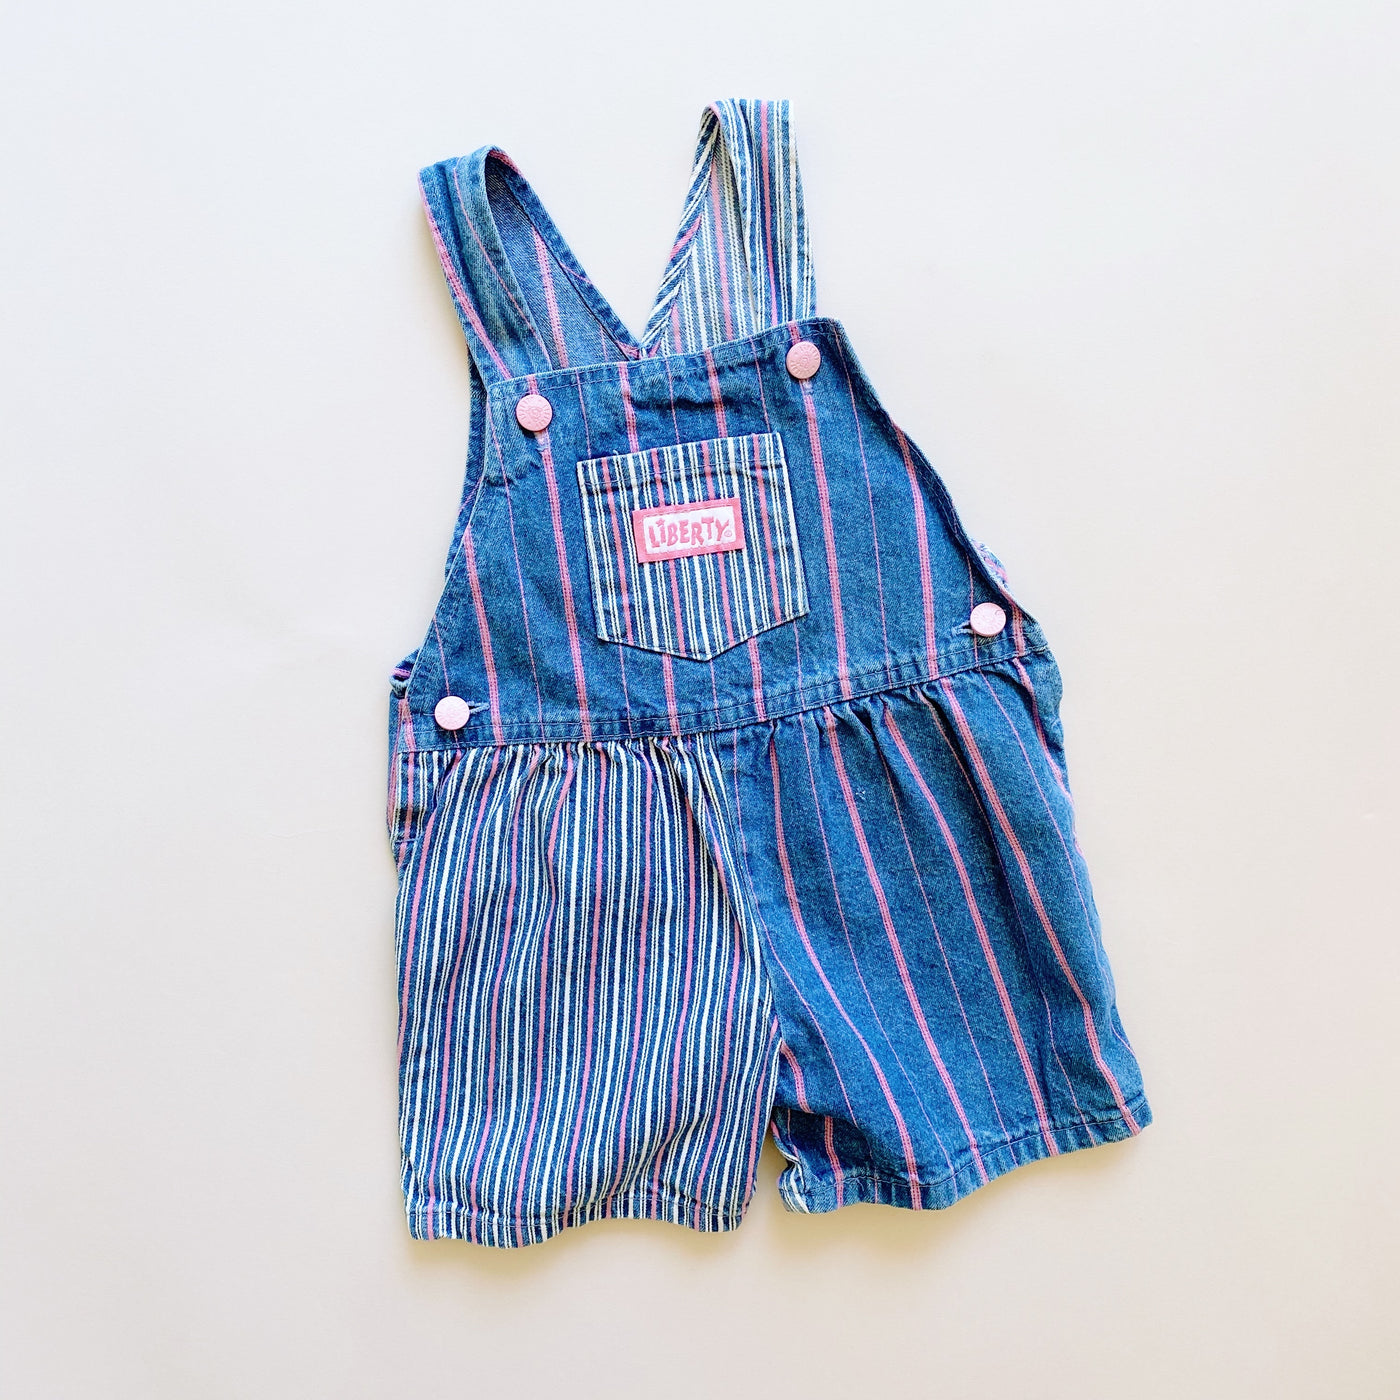 Cotton Candy Striped Shortalls / Size 3T